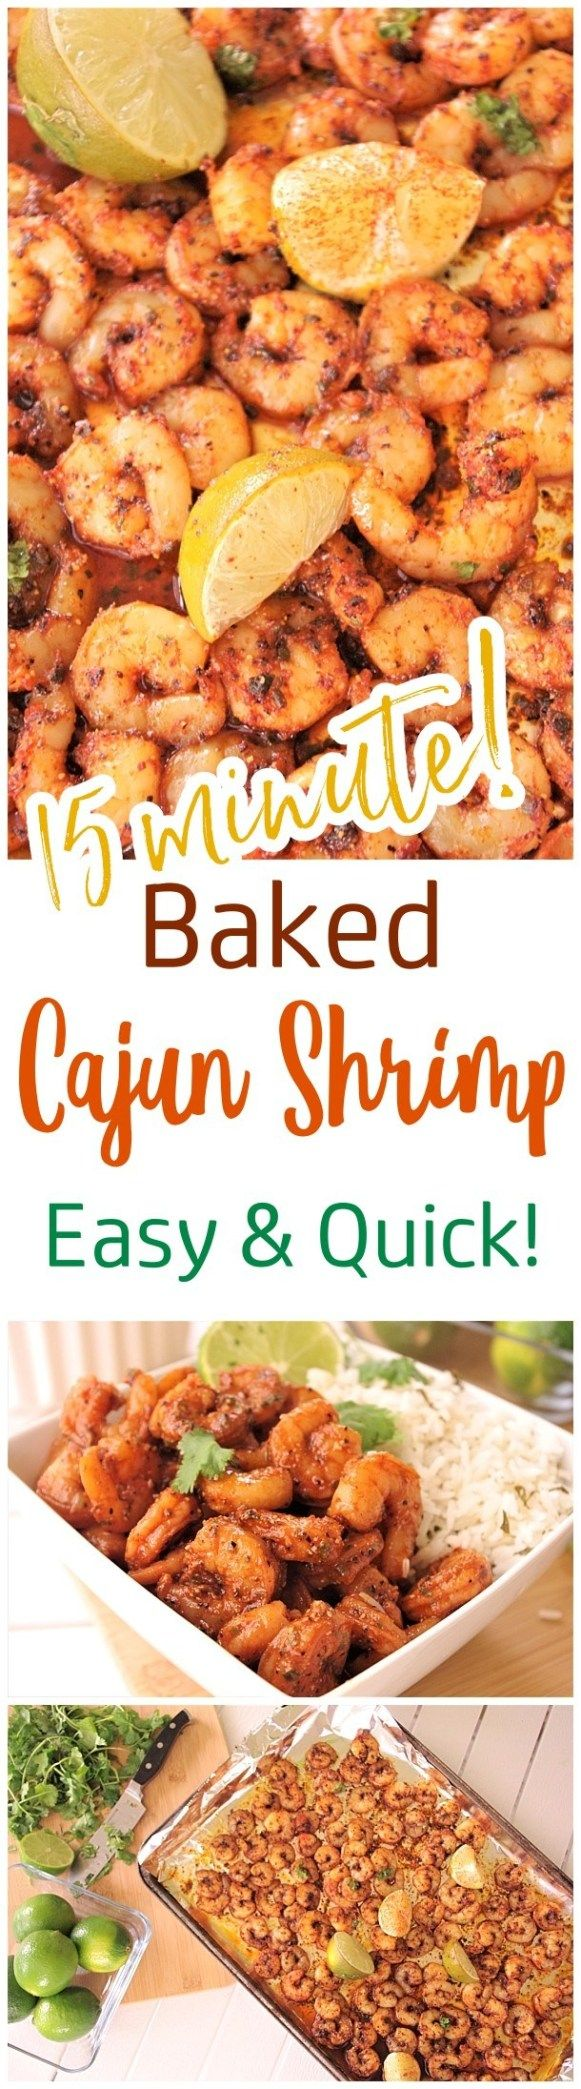 The BEST Sheet Pan Suppers Recipes – Easy and Quick Baked Family Lunch and Simple Dinner Meal Ideas using only ONE Baking Sheet PAN! #sheetpansuppers